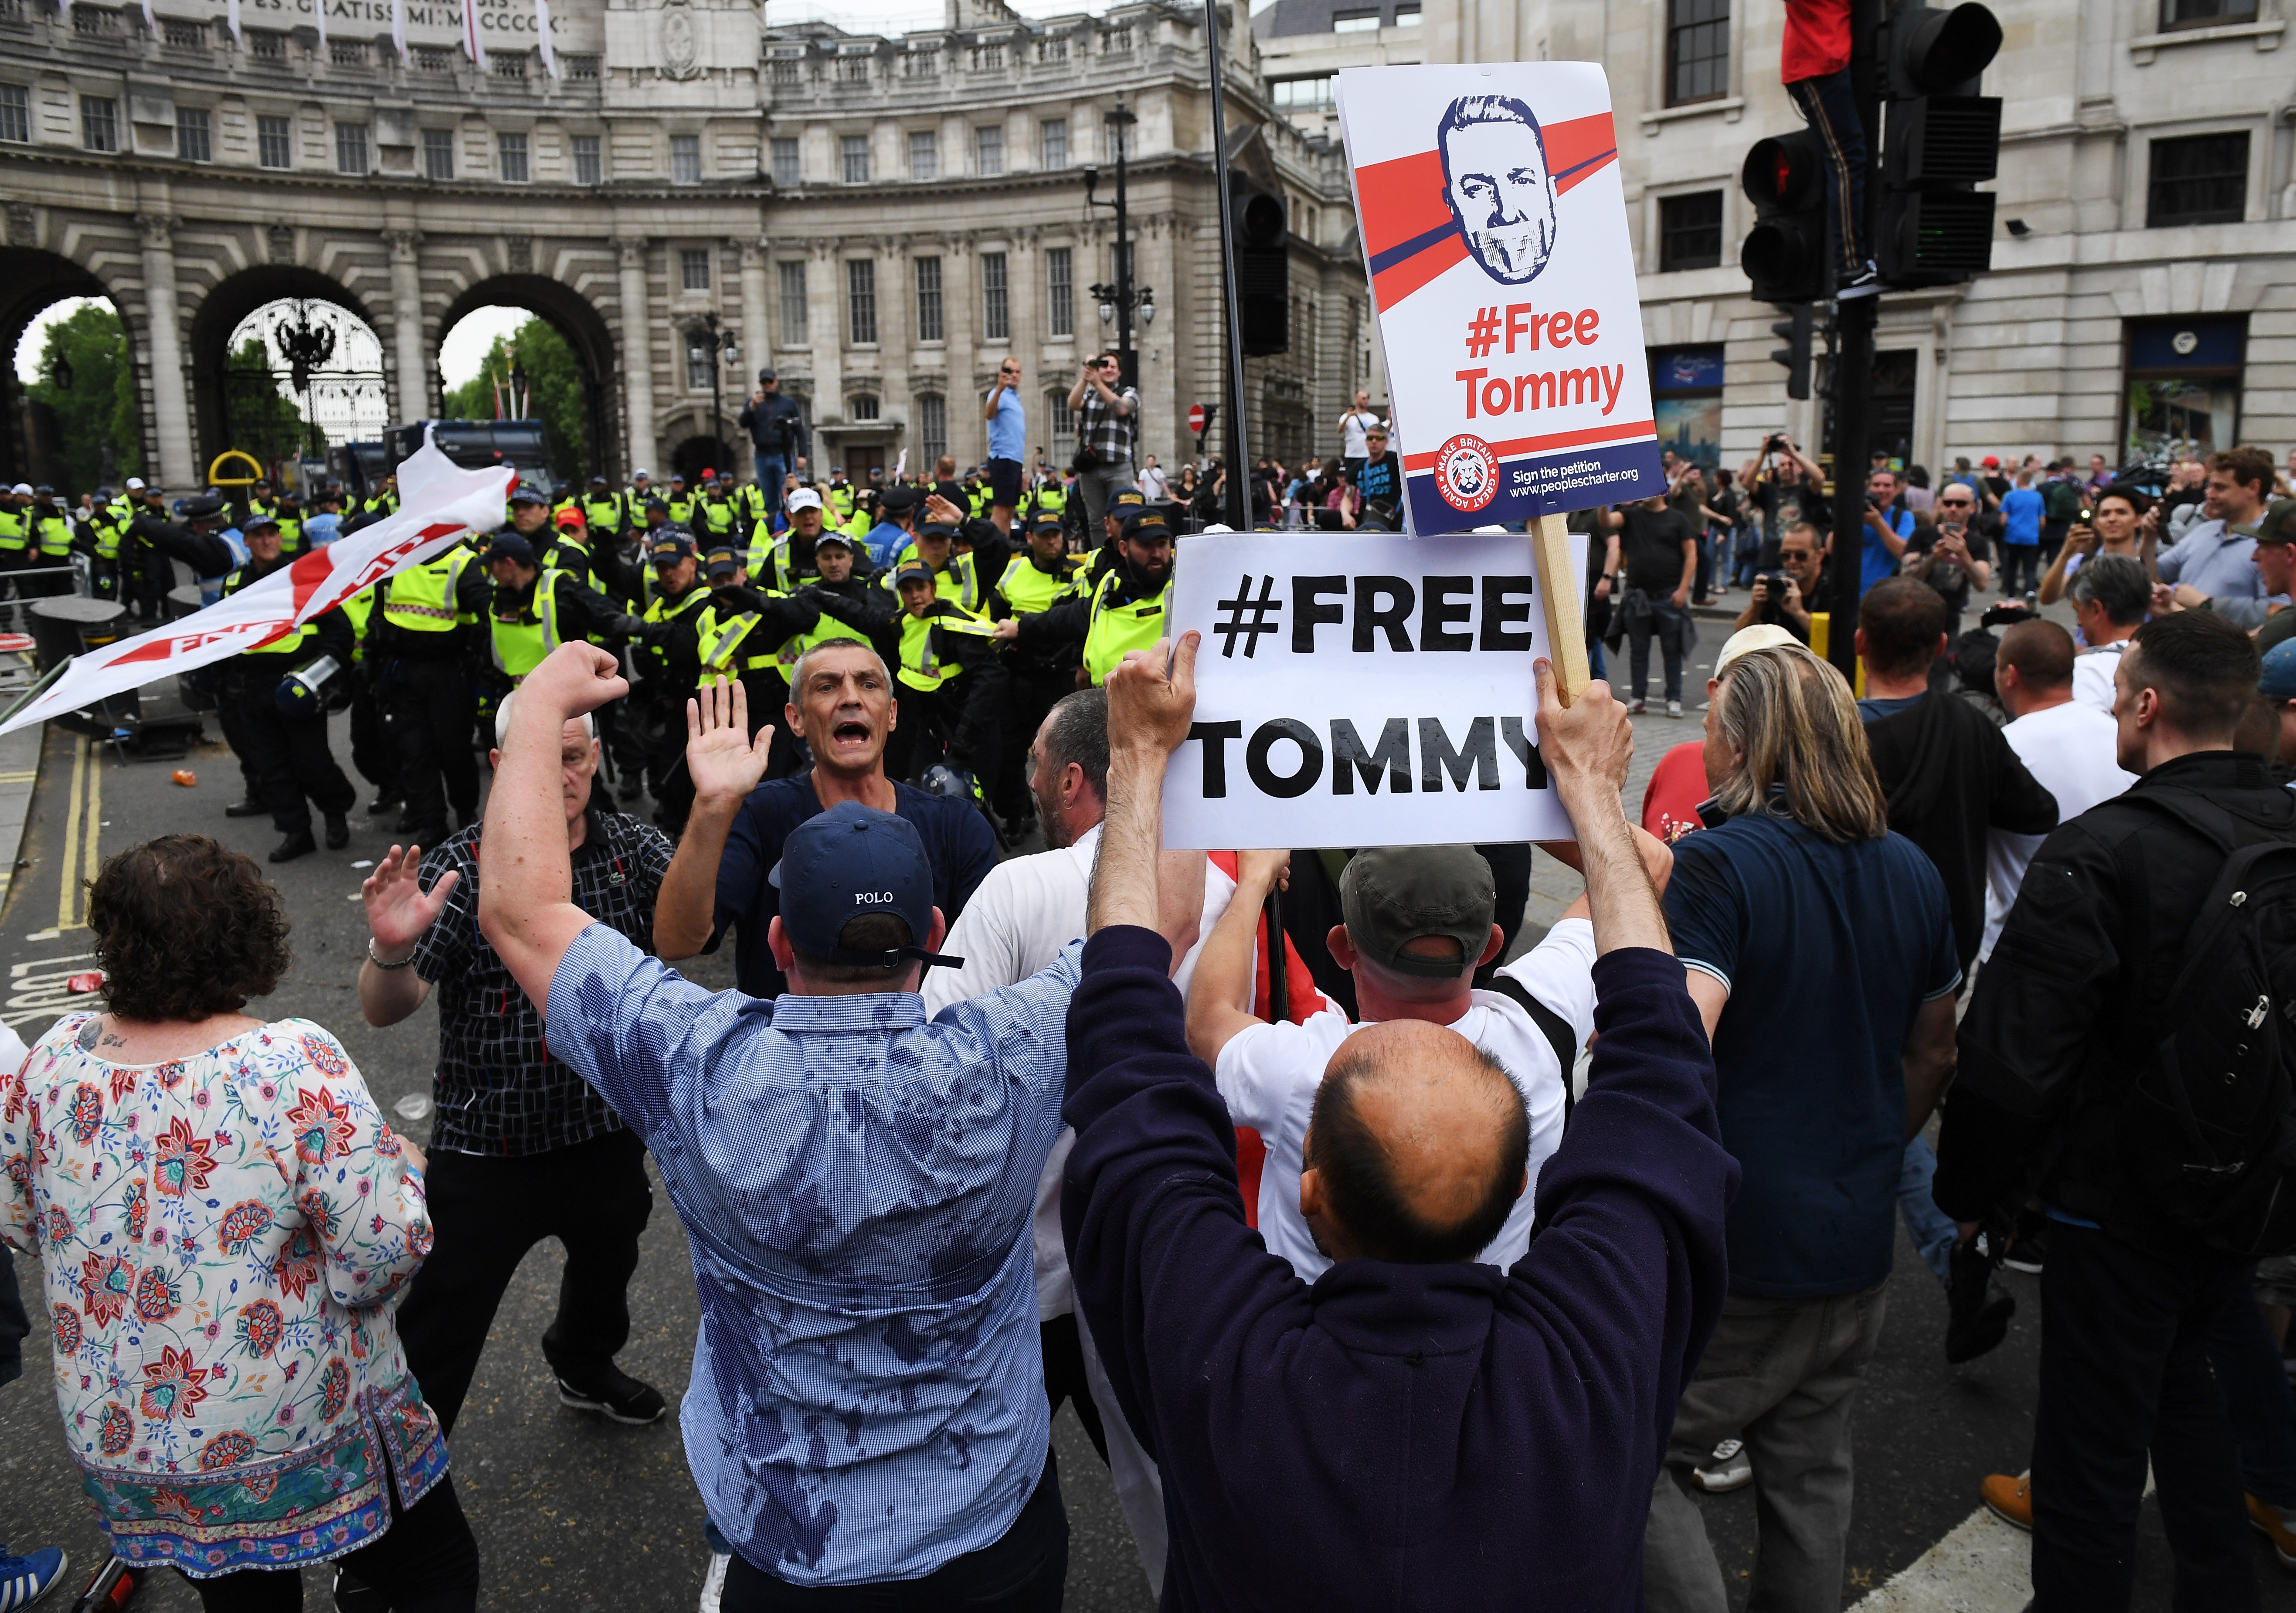 LONDON, ENGLAND - JUNE 09: Demonstrators clash with police during a 'Free Tommy Robinson' protest on Whitehall on June 9, 2018 in London, England. Protesters are calling for the release of English Defense League (EDL) leader Tommy Robinson who is serving 13 months in prison for contempt of court. (Photo by Chris J Ratcliffe/Getty Images)